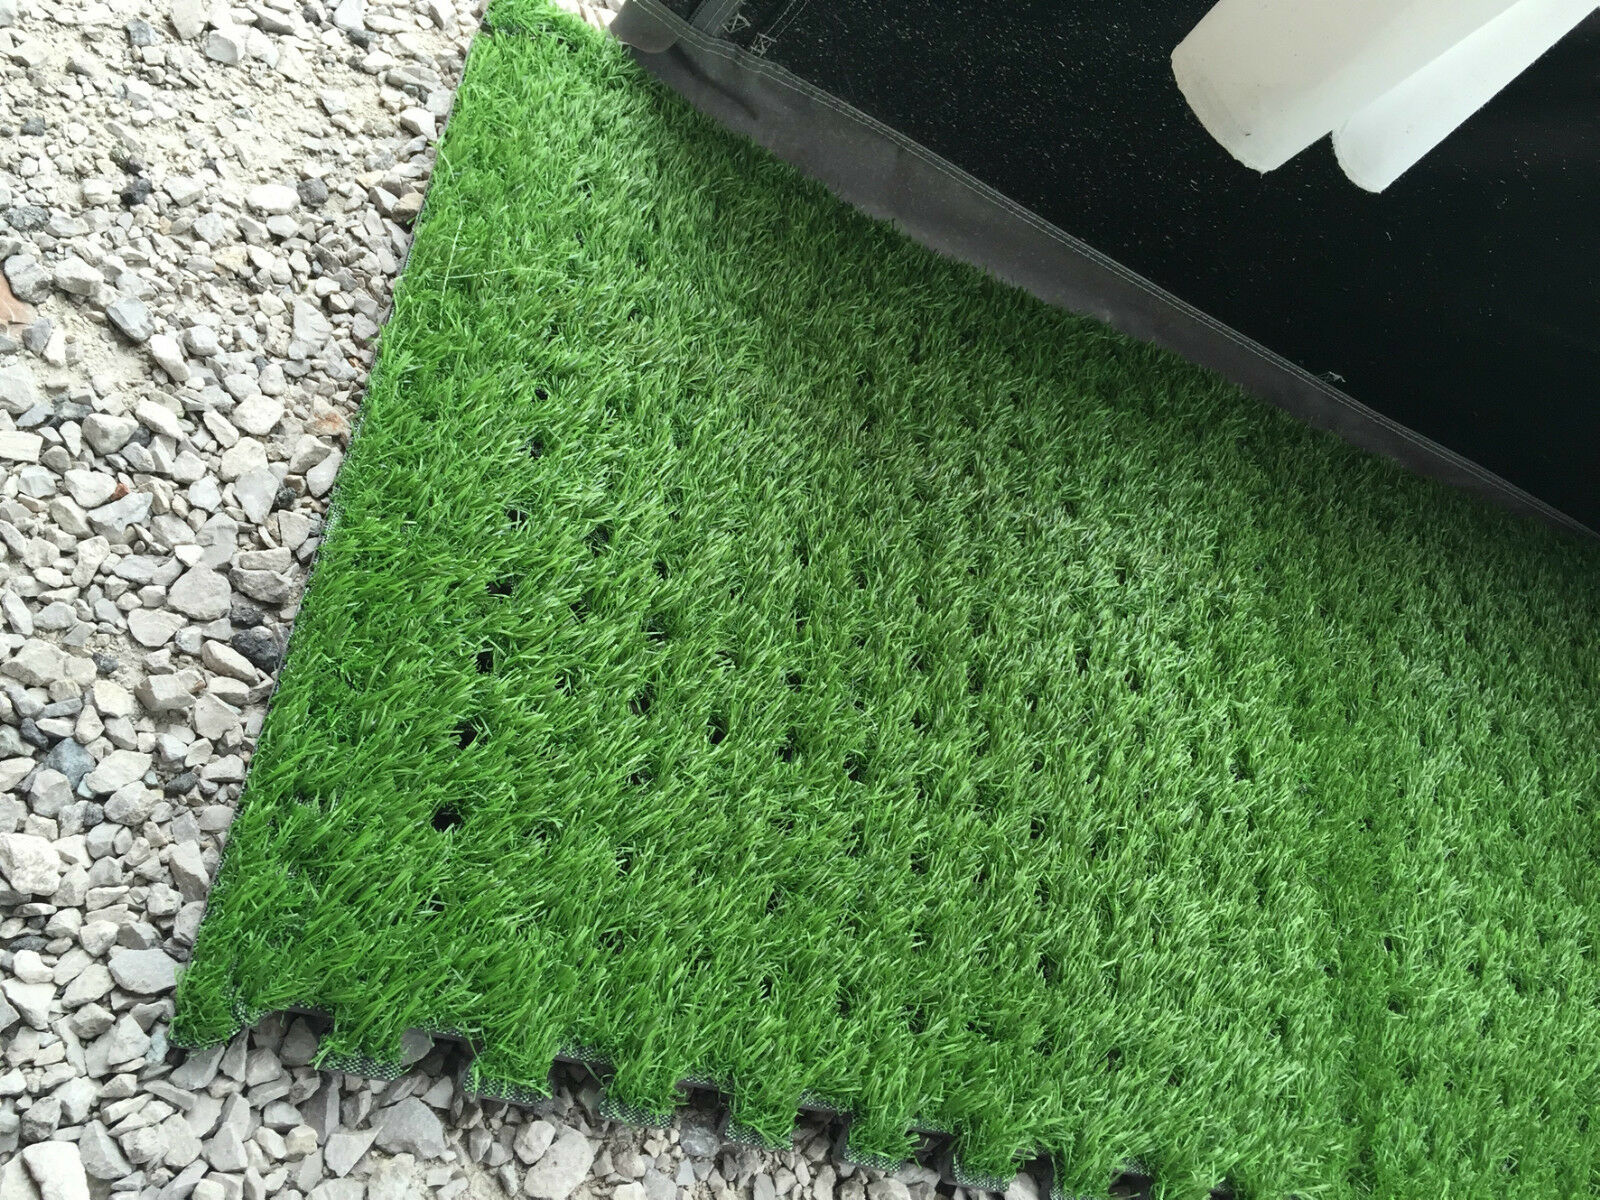 Real Look Green Grass Padded Eva Floor Mat Carpet Tiles for Awning Tent Marquee